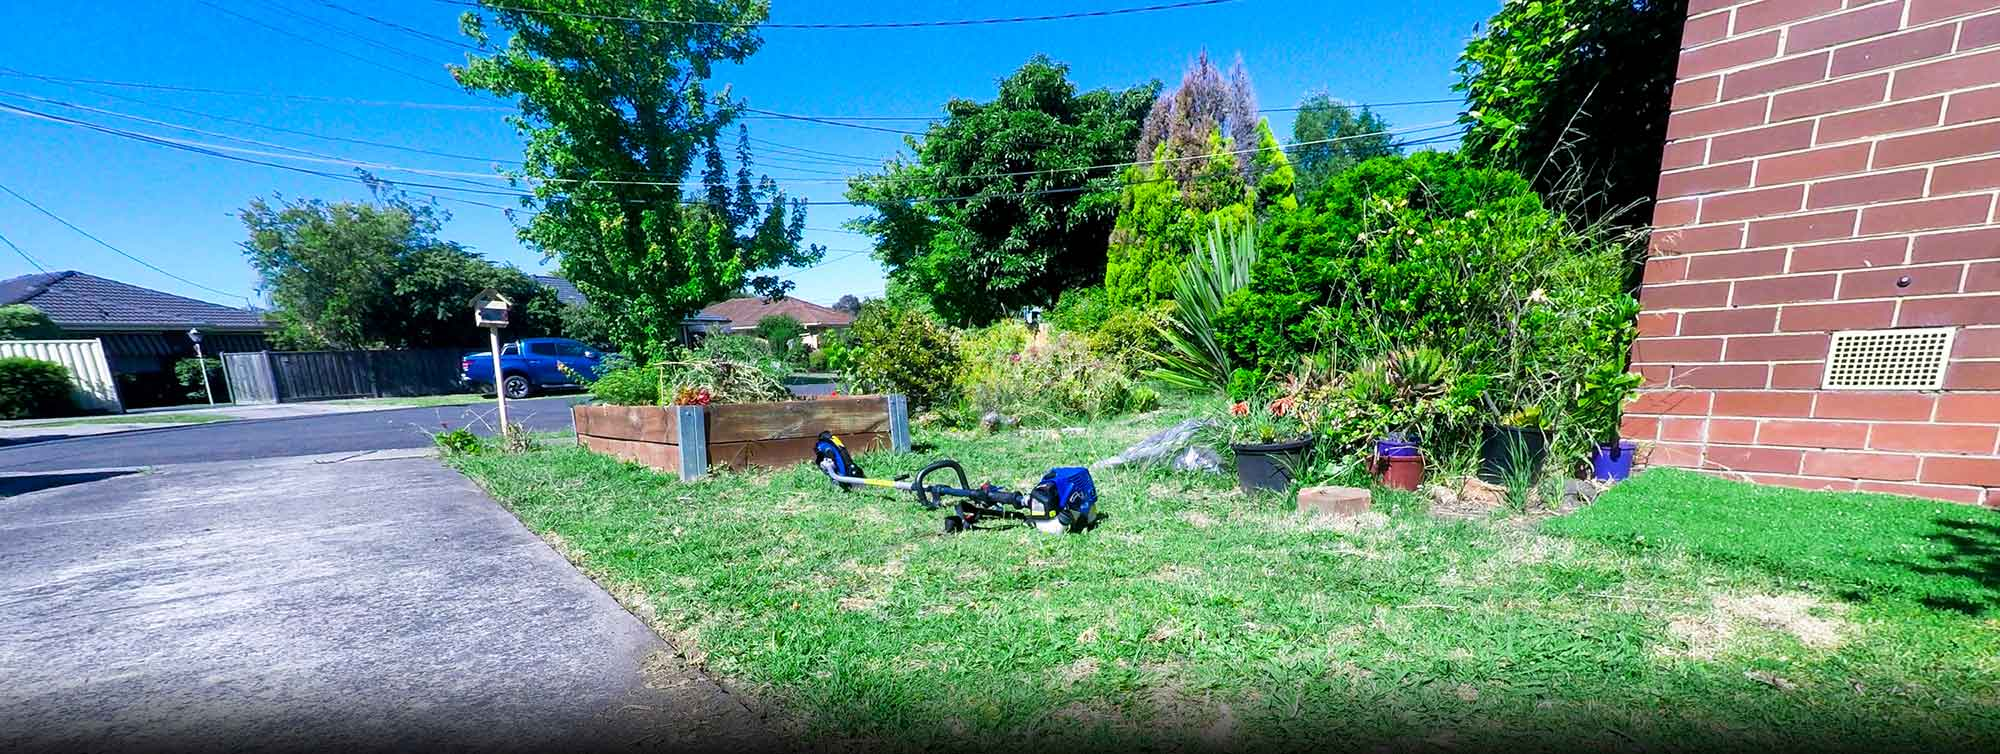 Lawn Edging Service Melbourne